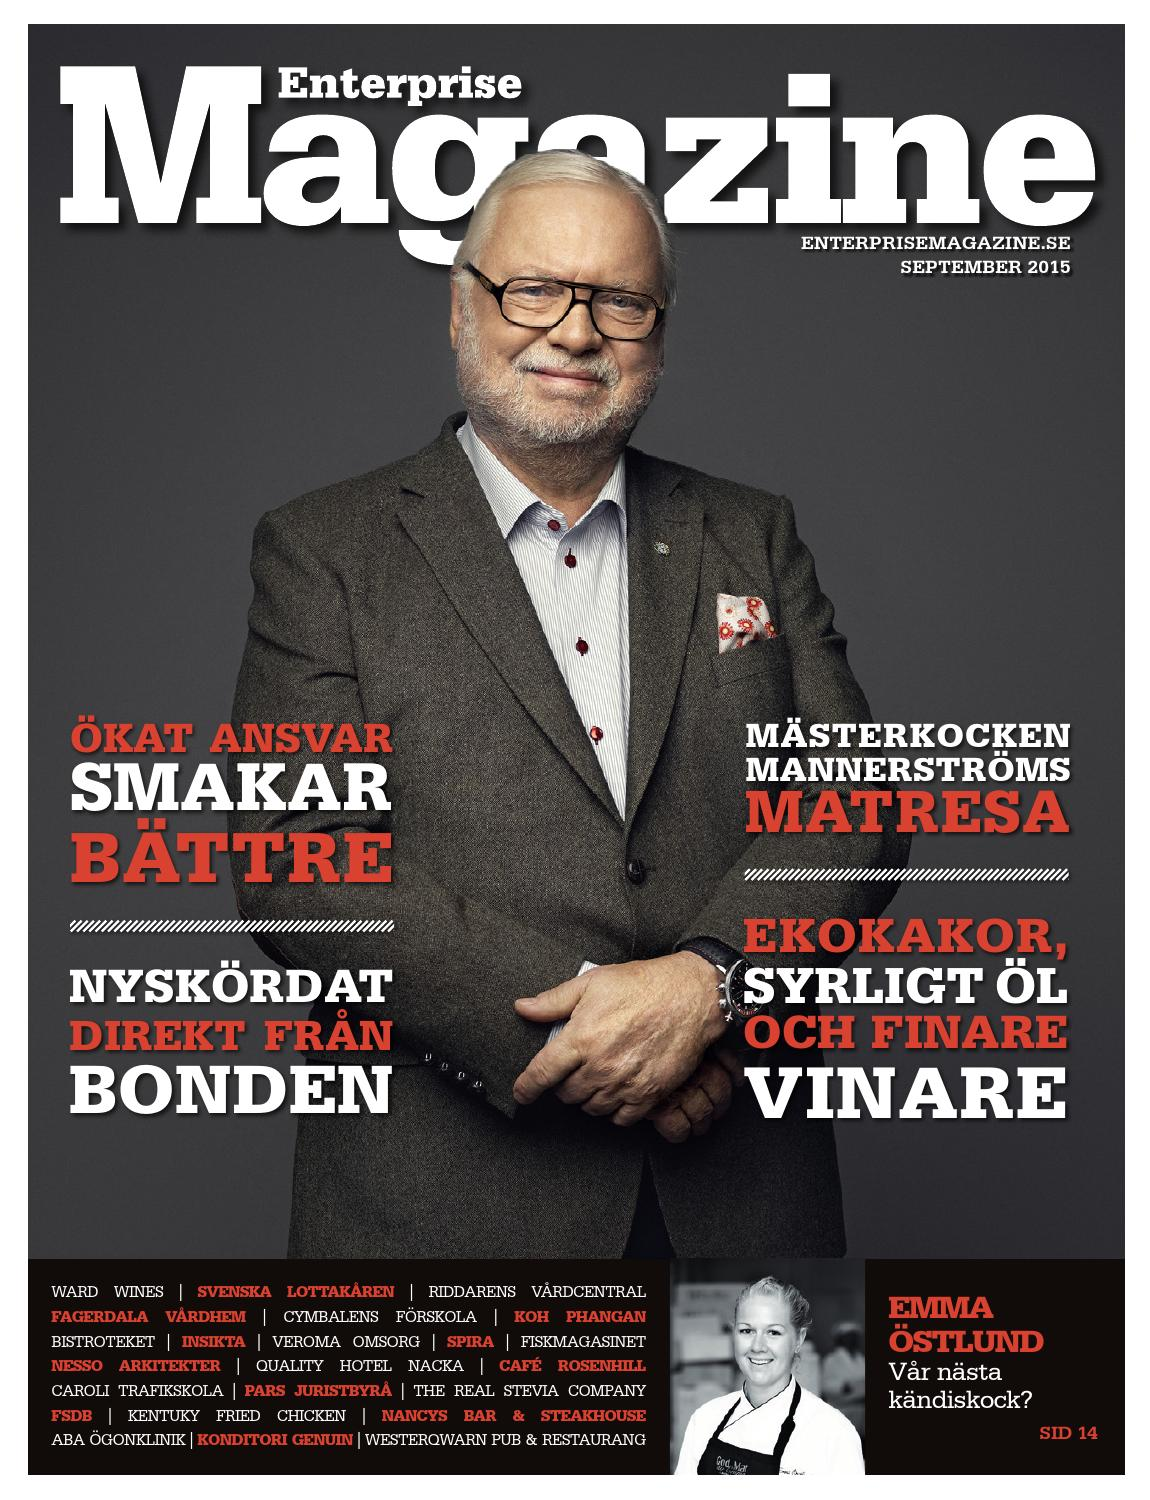 Enterprise Magazine September 2015 by RDS Förlag - issuu bc340d523a02e